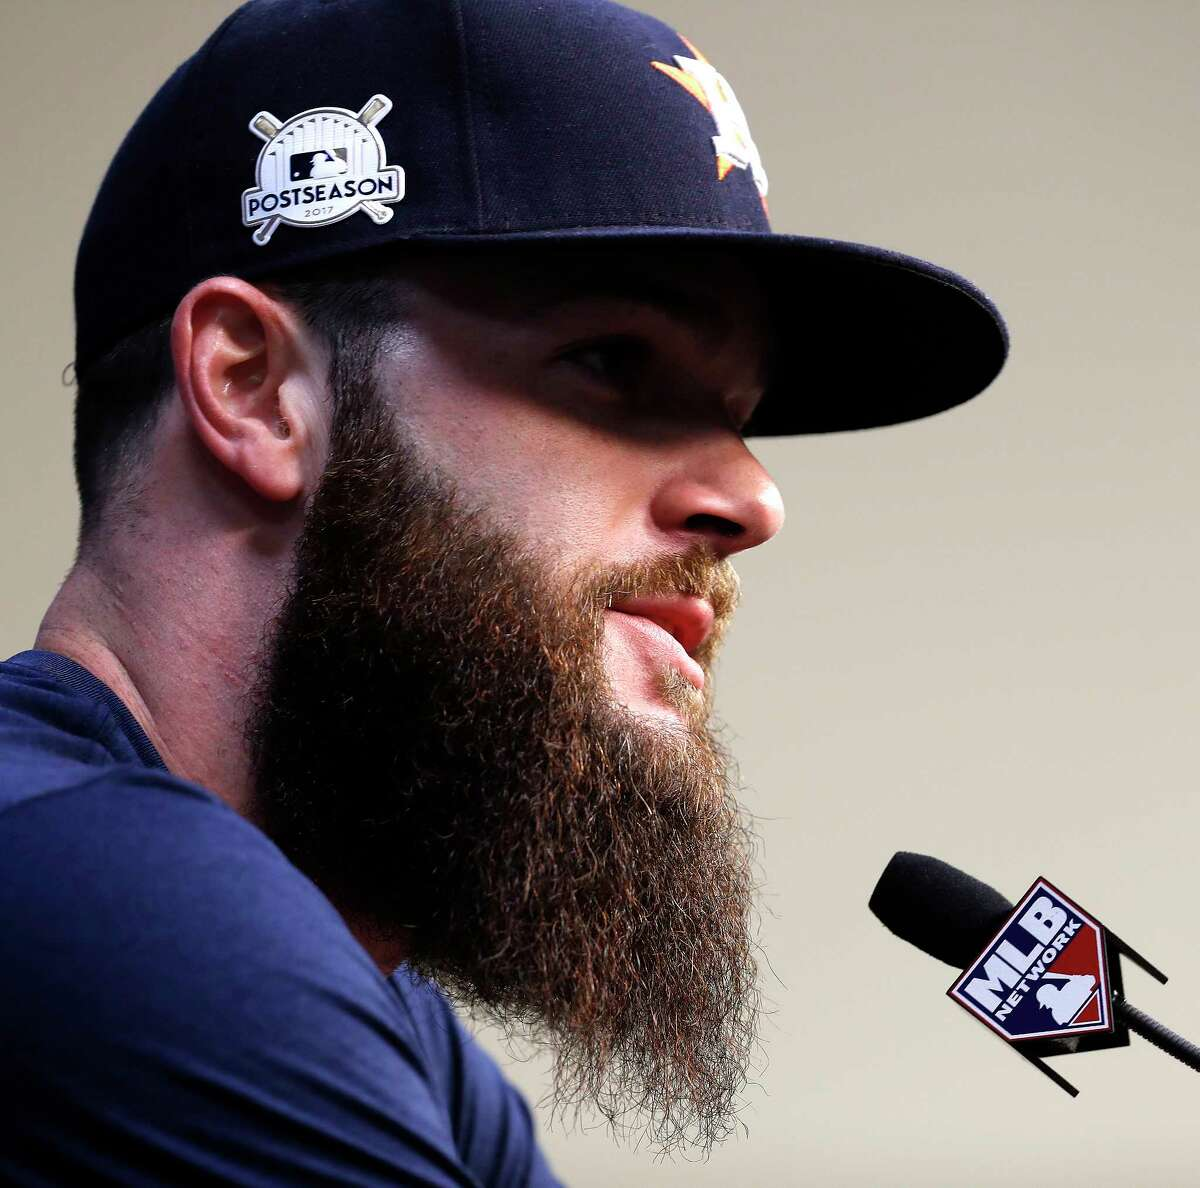 Houston Astros Dallas Keuchel the starting pitcher for the Game 1 of the ALCS speaks to the media at Minute Maid Park, Thursday, Oct. 12, 2017, in Houston , ahead of Game 1 of the ALCS.